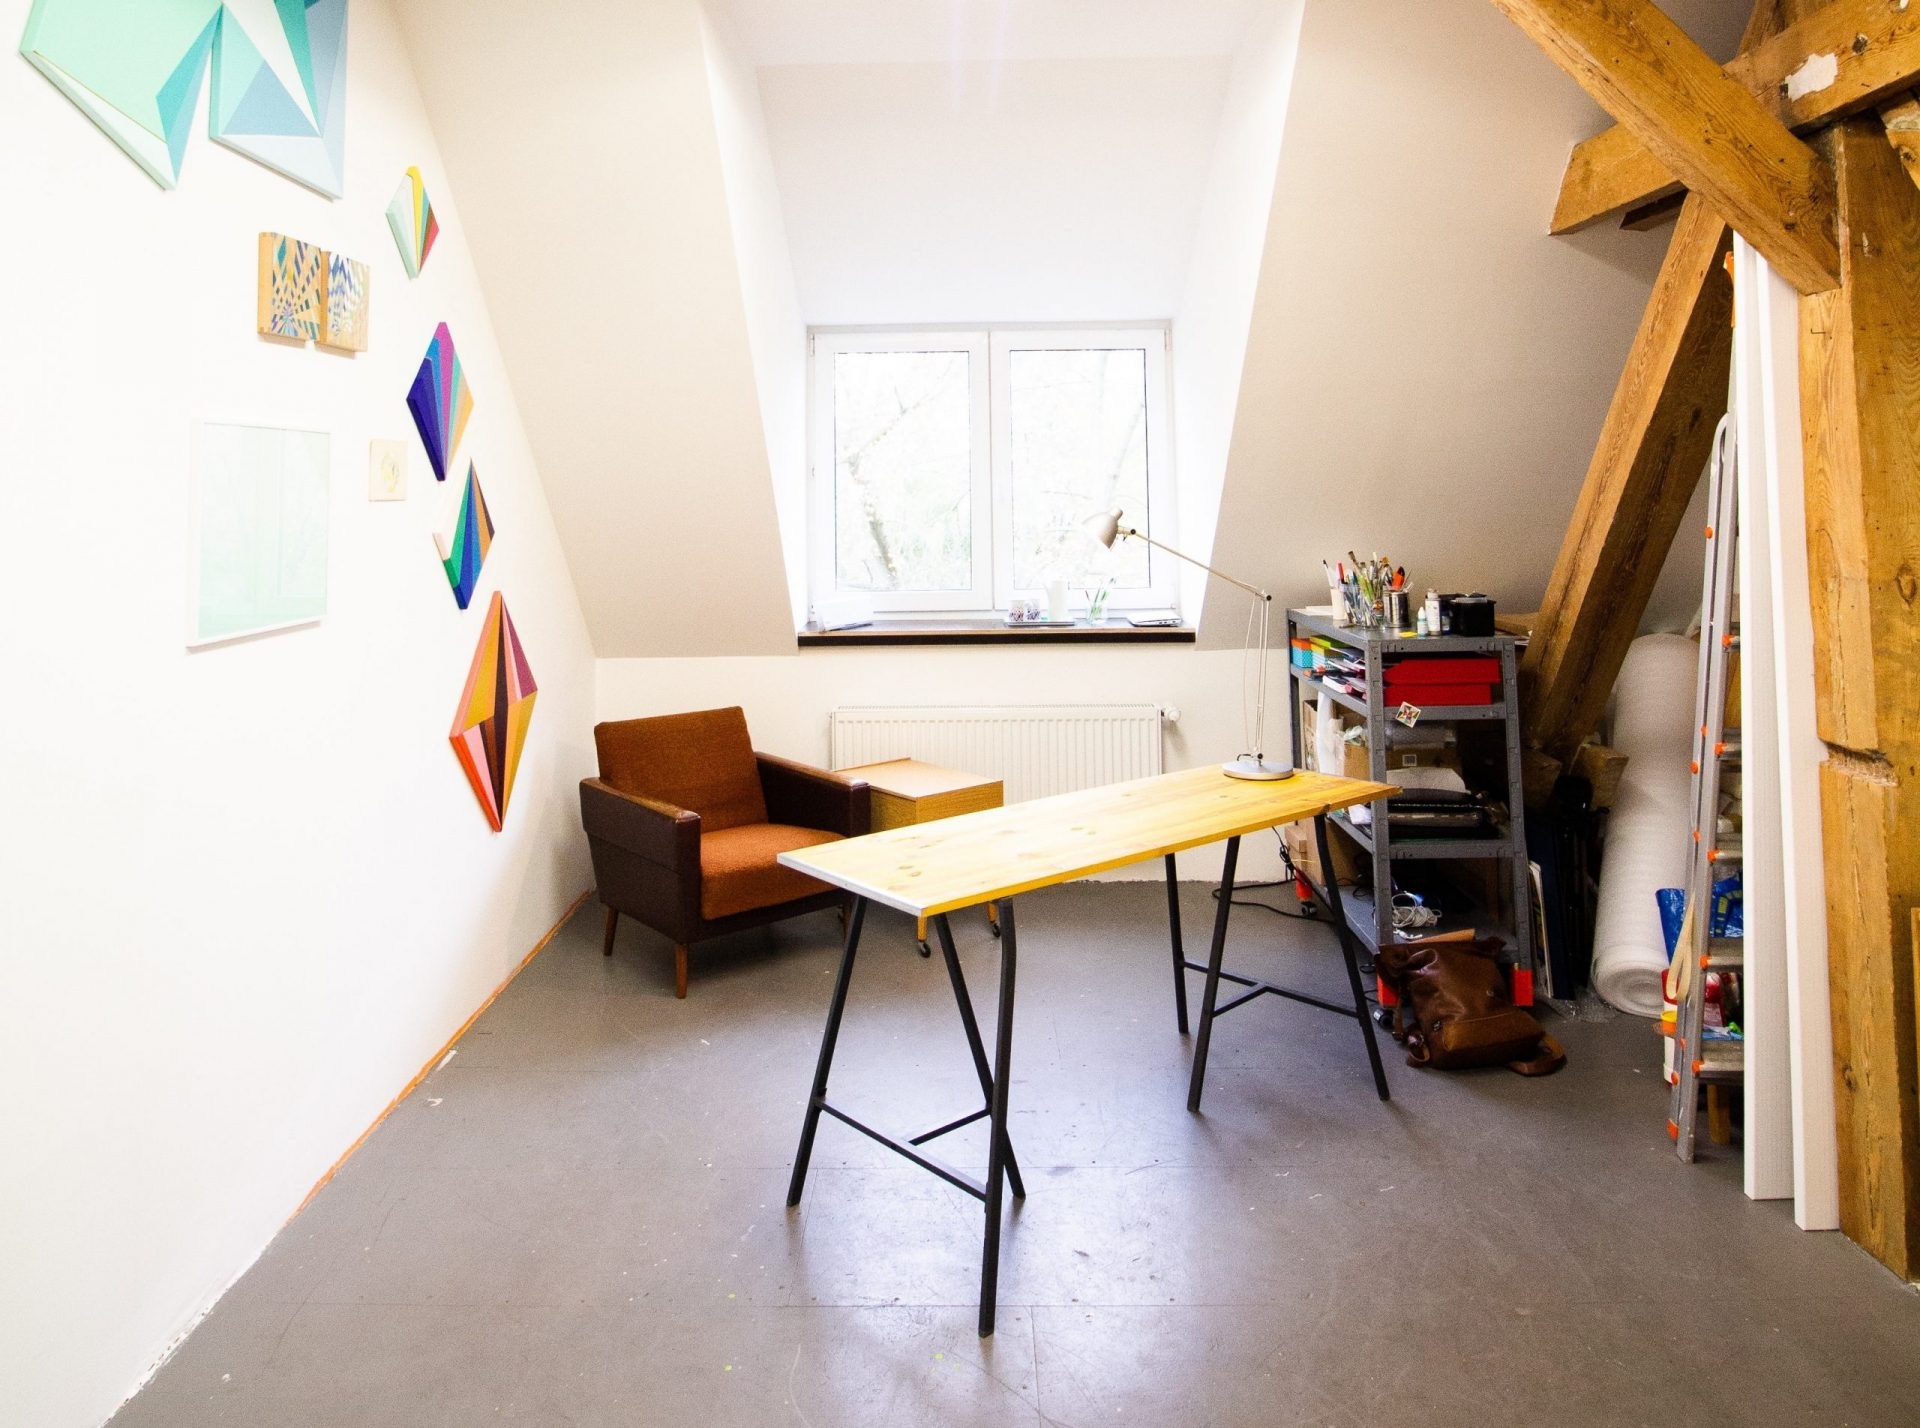 Home Renovation Ideas by Portofino: Convert Your Attic to an Office Space